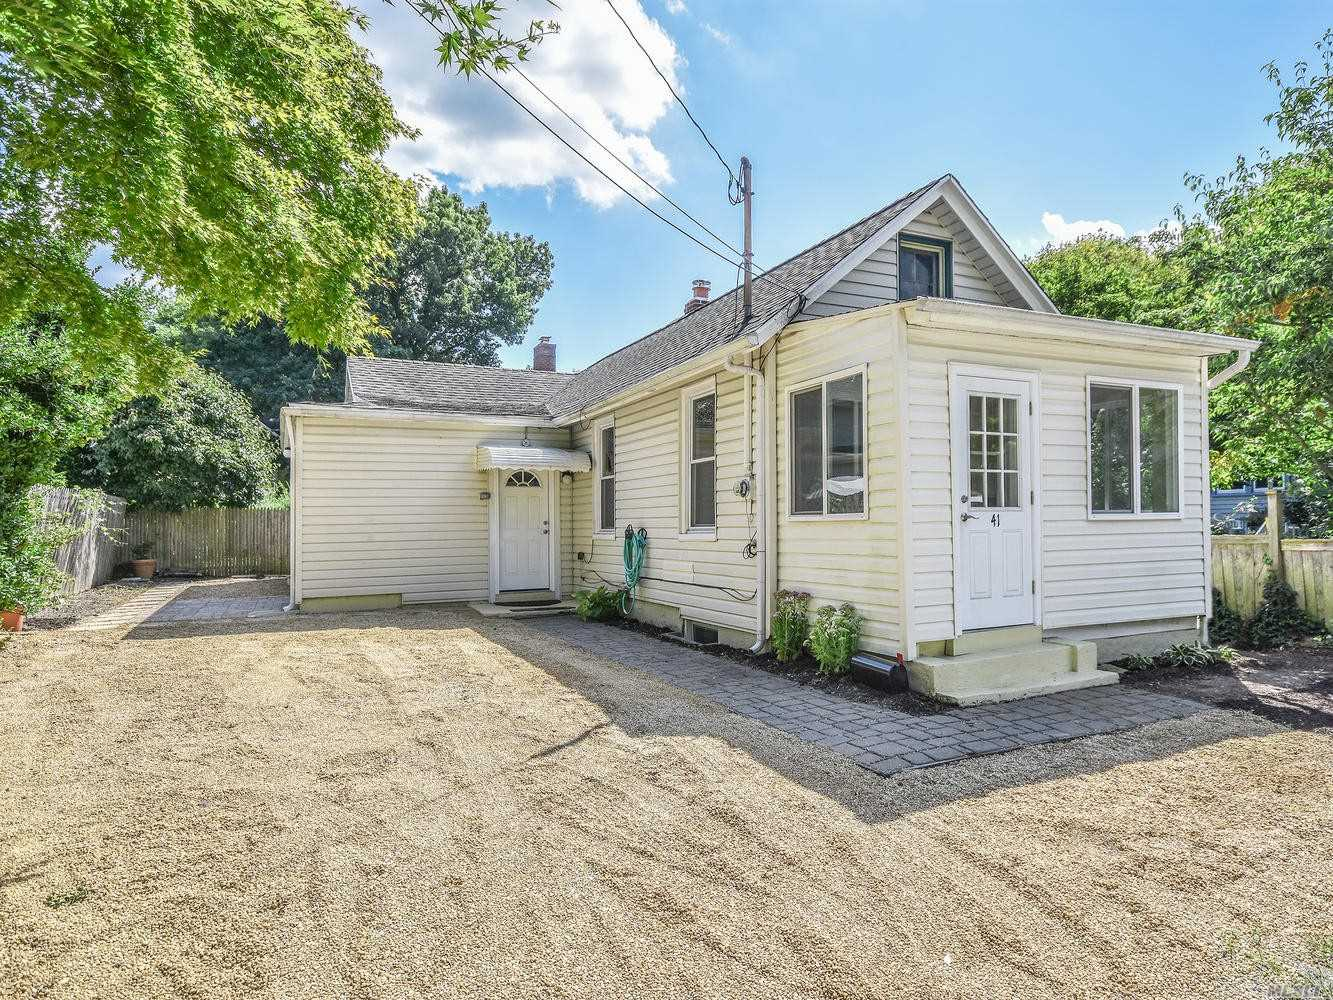 Cozy Two Bedroom Country Cottage With Updated Kitchen And Bath. Off Street Parking For Two Cars. Close Proximity To Sea Cliff Elementary School, Parks, Shops, Library, Restaurants And Beach. No Pets. Full Current Credit Report And References Required. No Smoking In House.